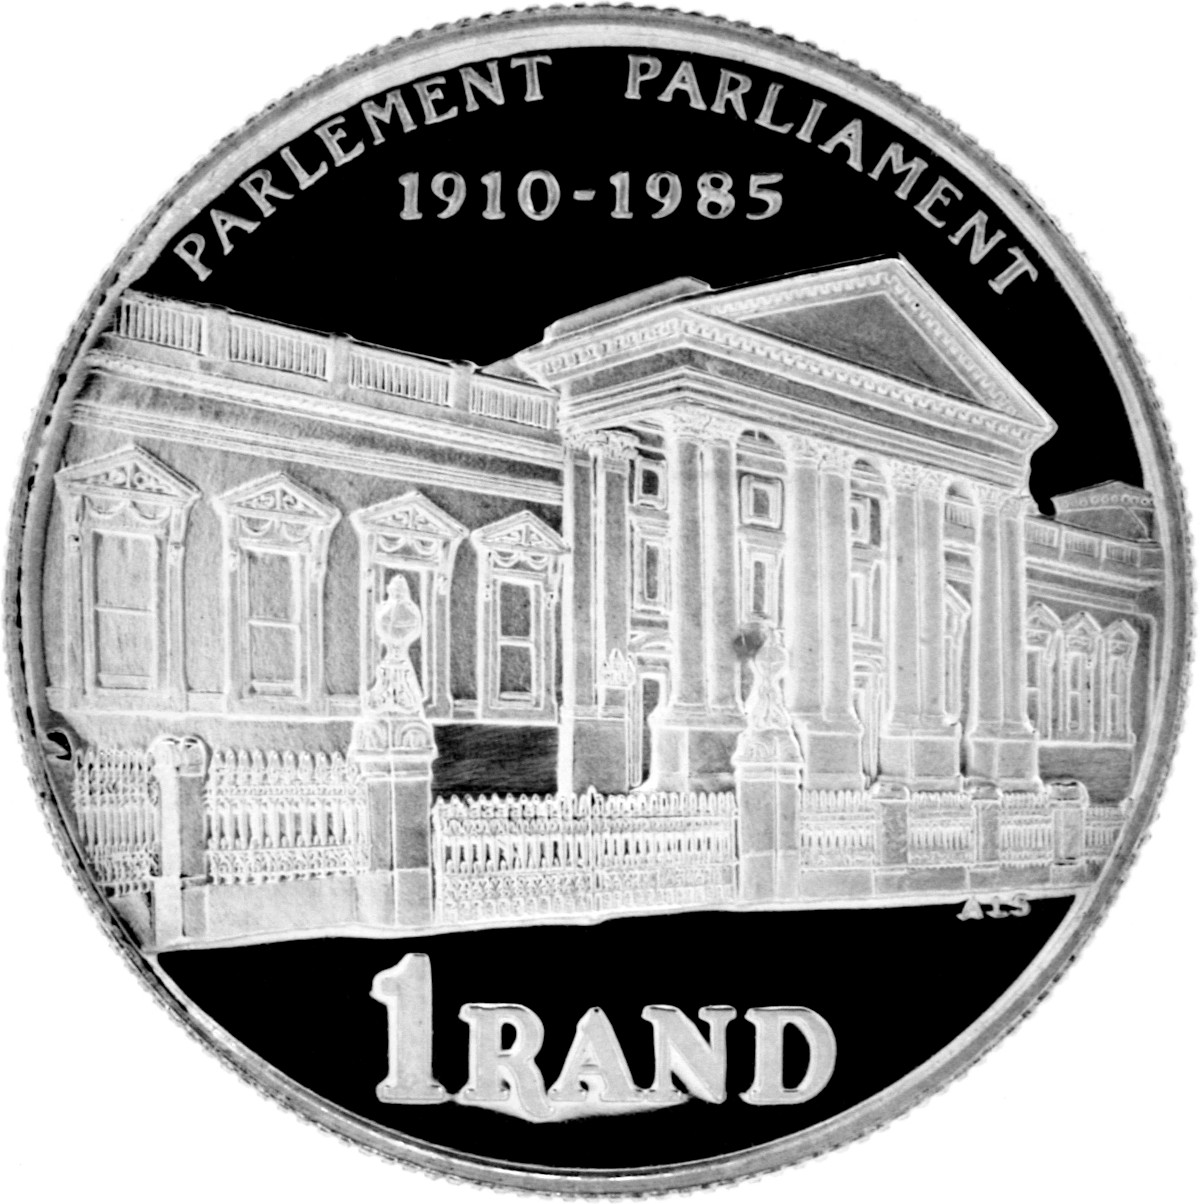 One Rand 1985 Parliament: Photo 1985 South Africa 1 Rand 75th Anniversary of Parliament Silver Proof